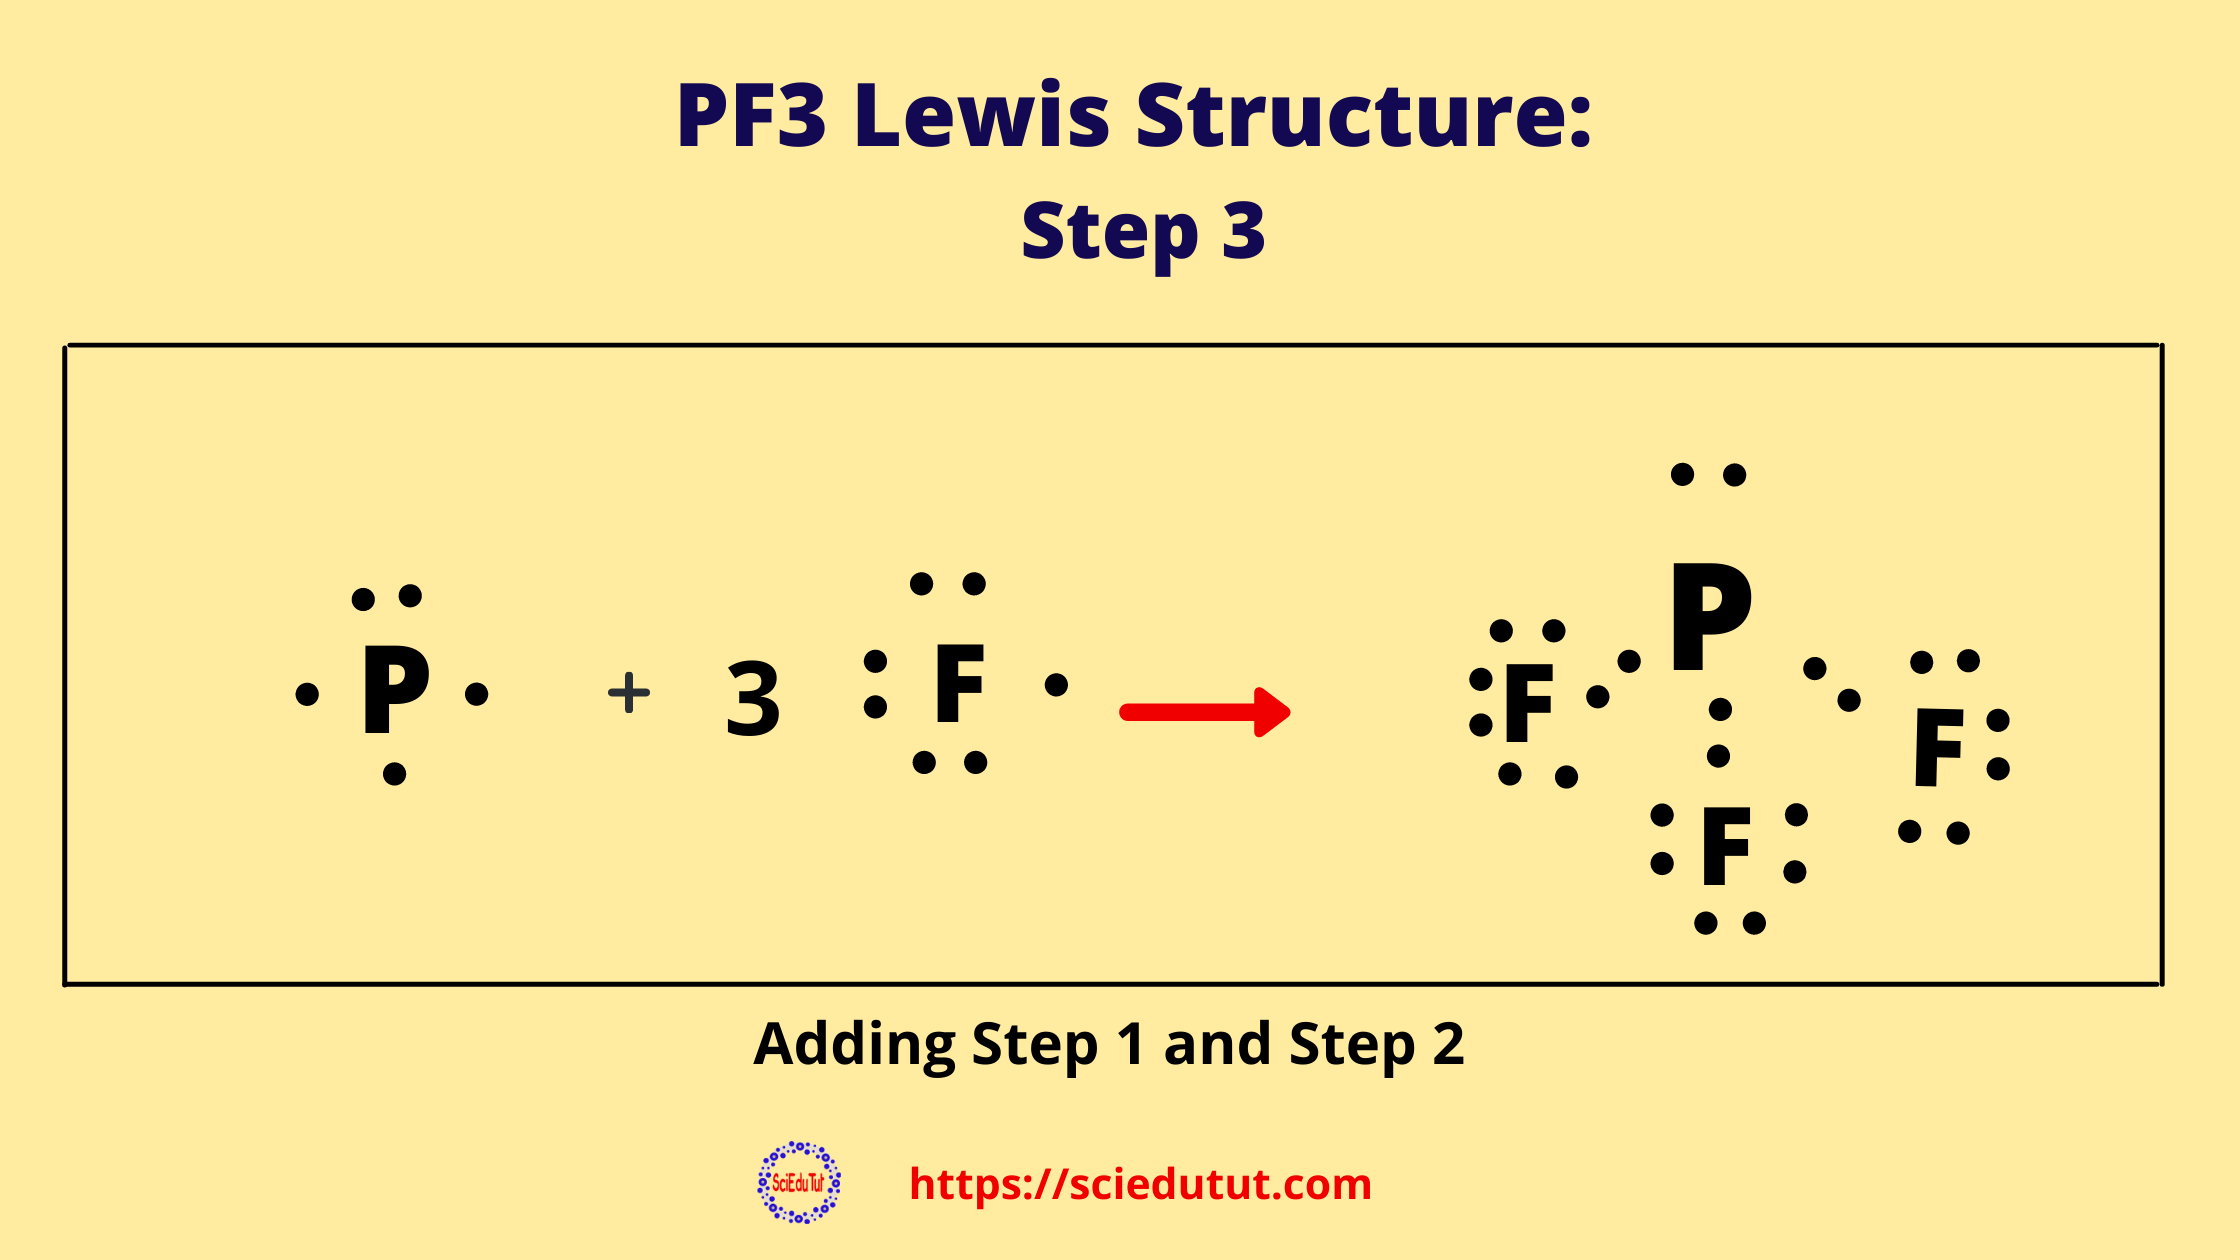 How to draw PF3 Lewis Structure?